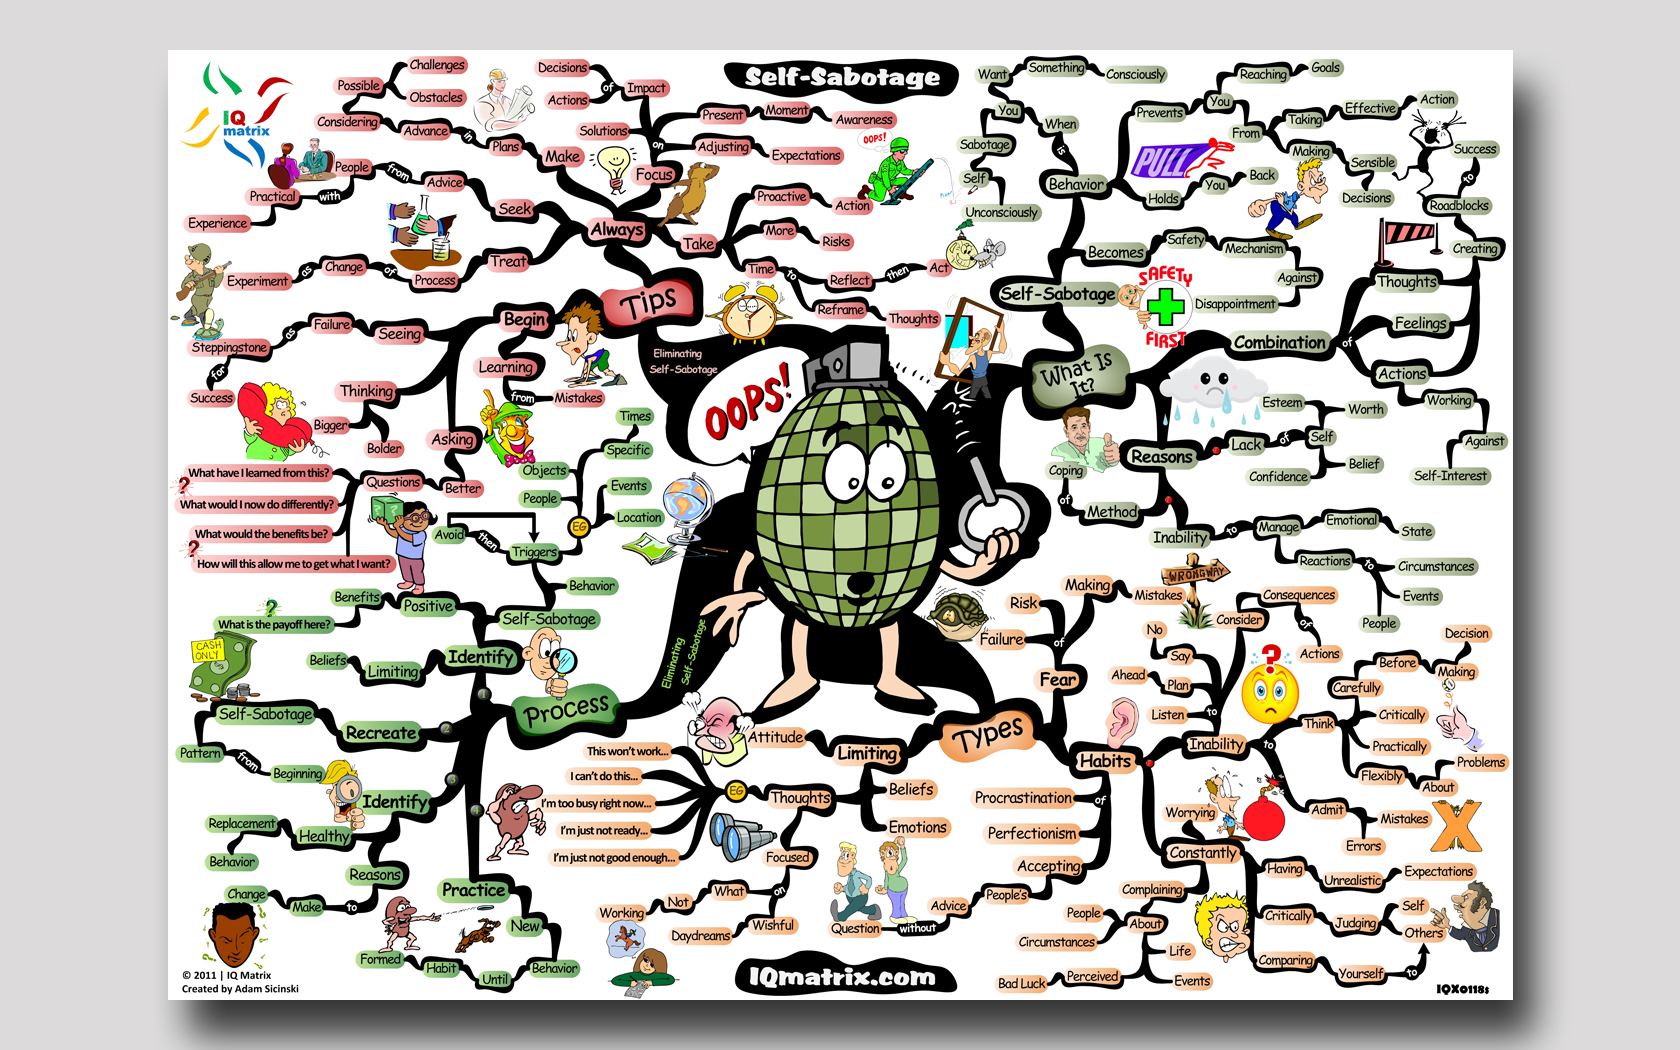 Download 23 Mind Map Desktop Backgrounds For Guidance And